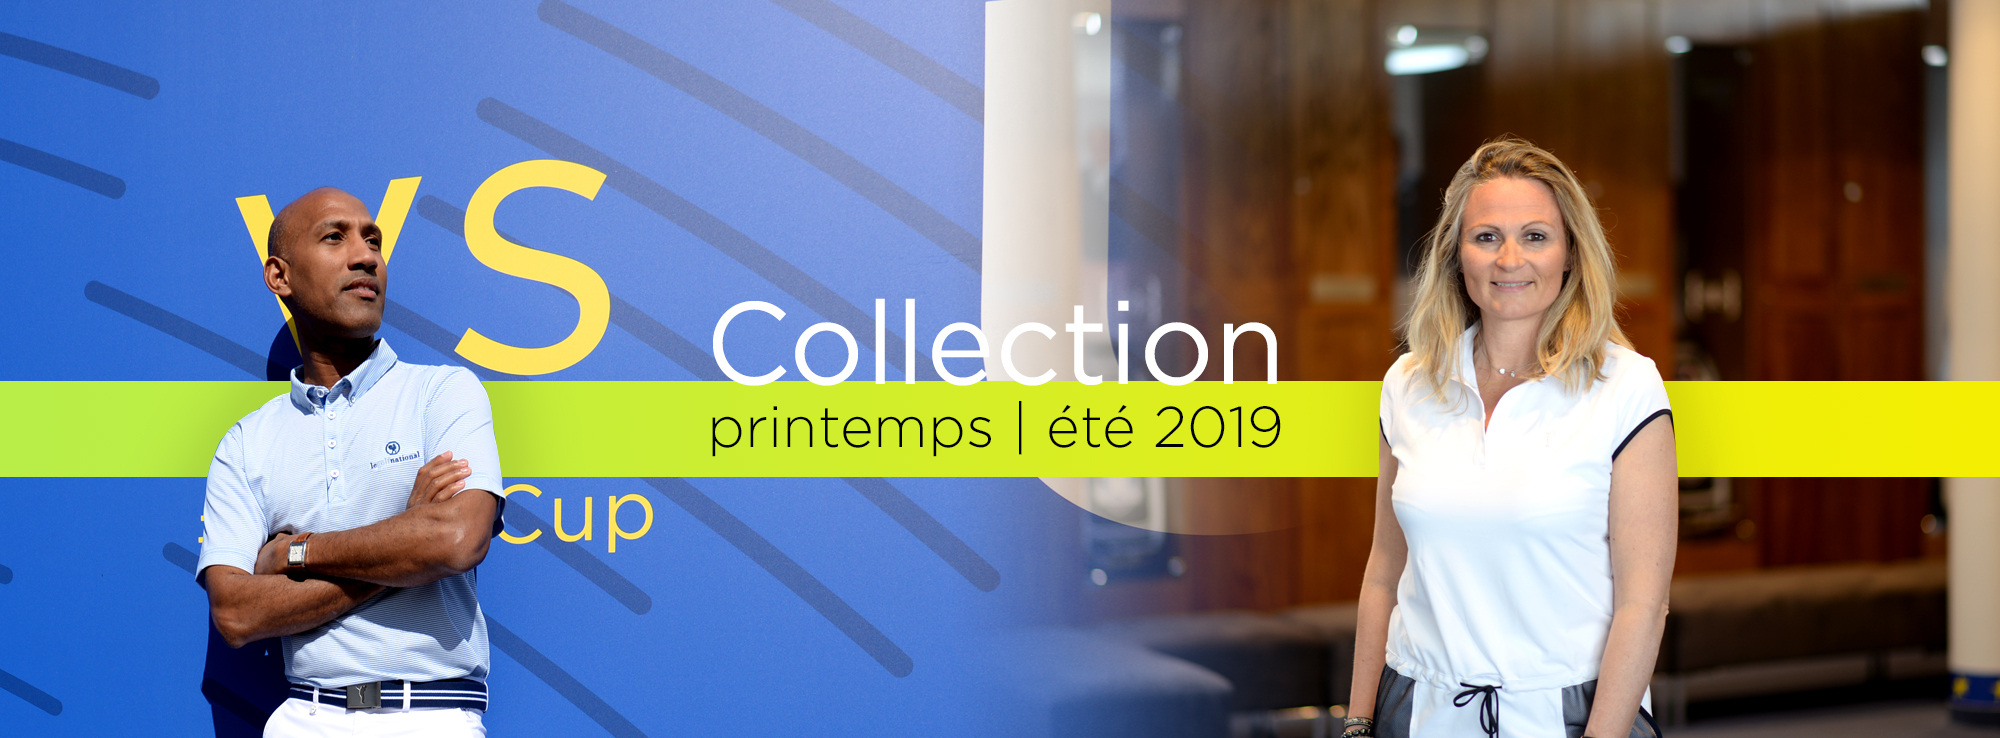 Collection printemps été 2019